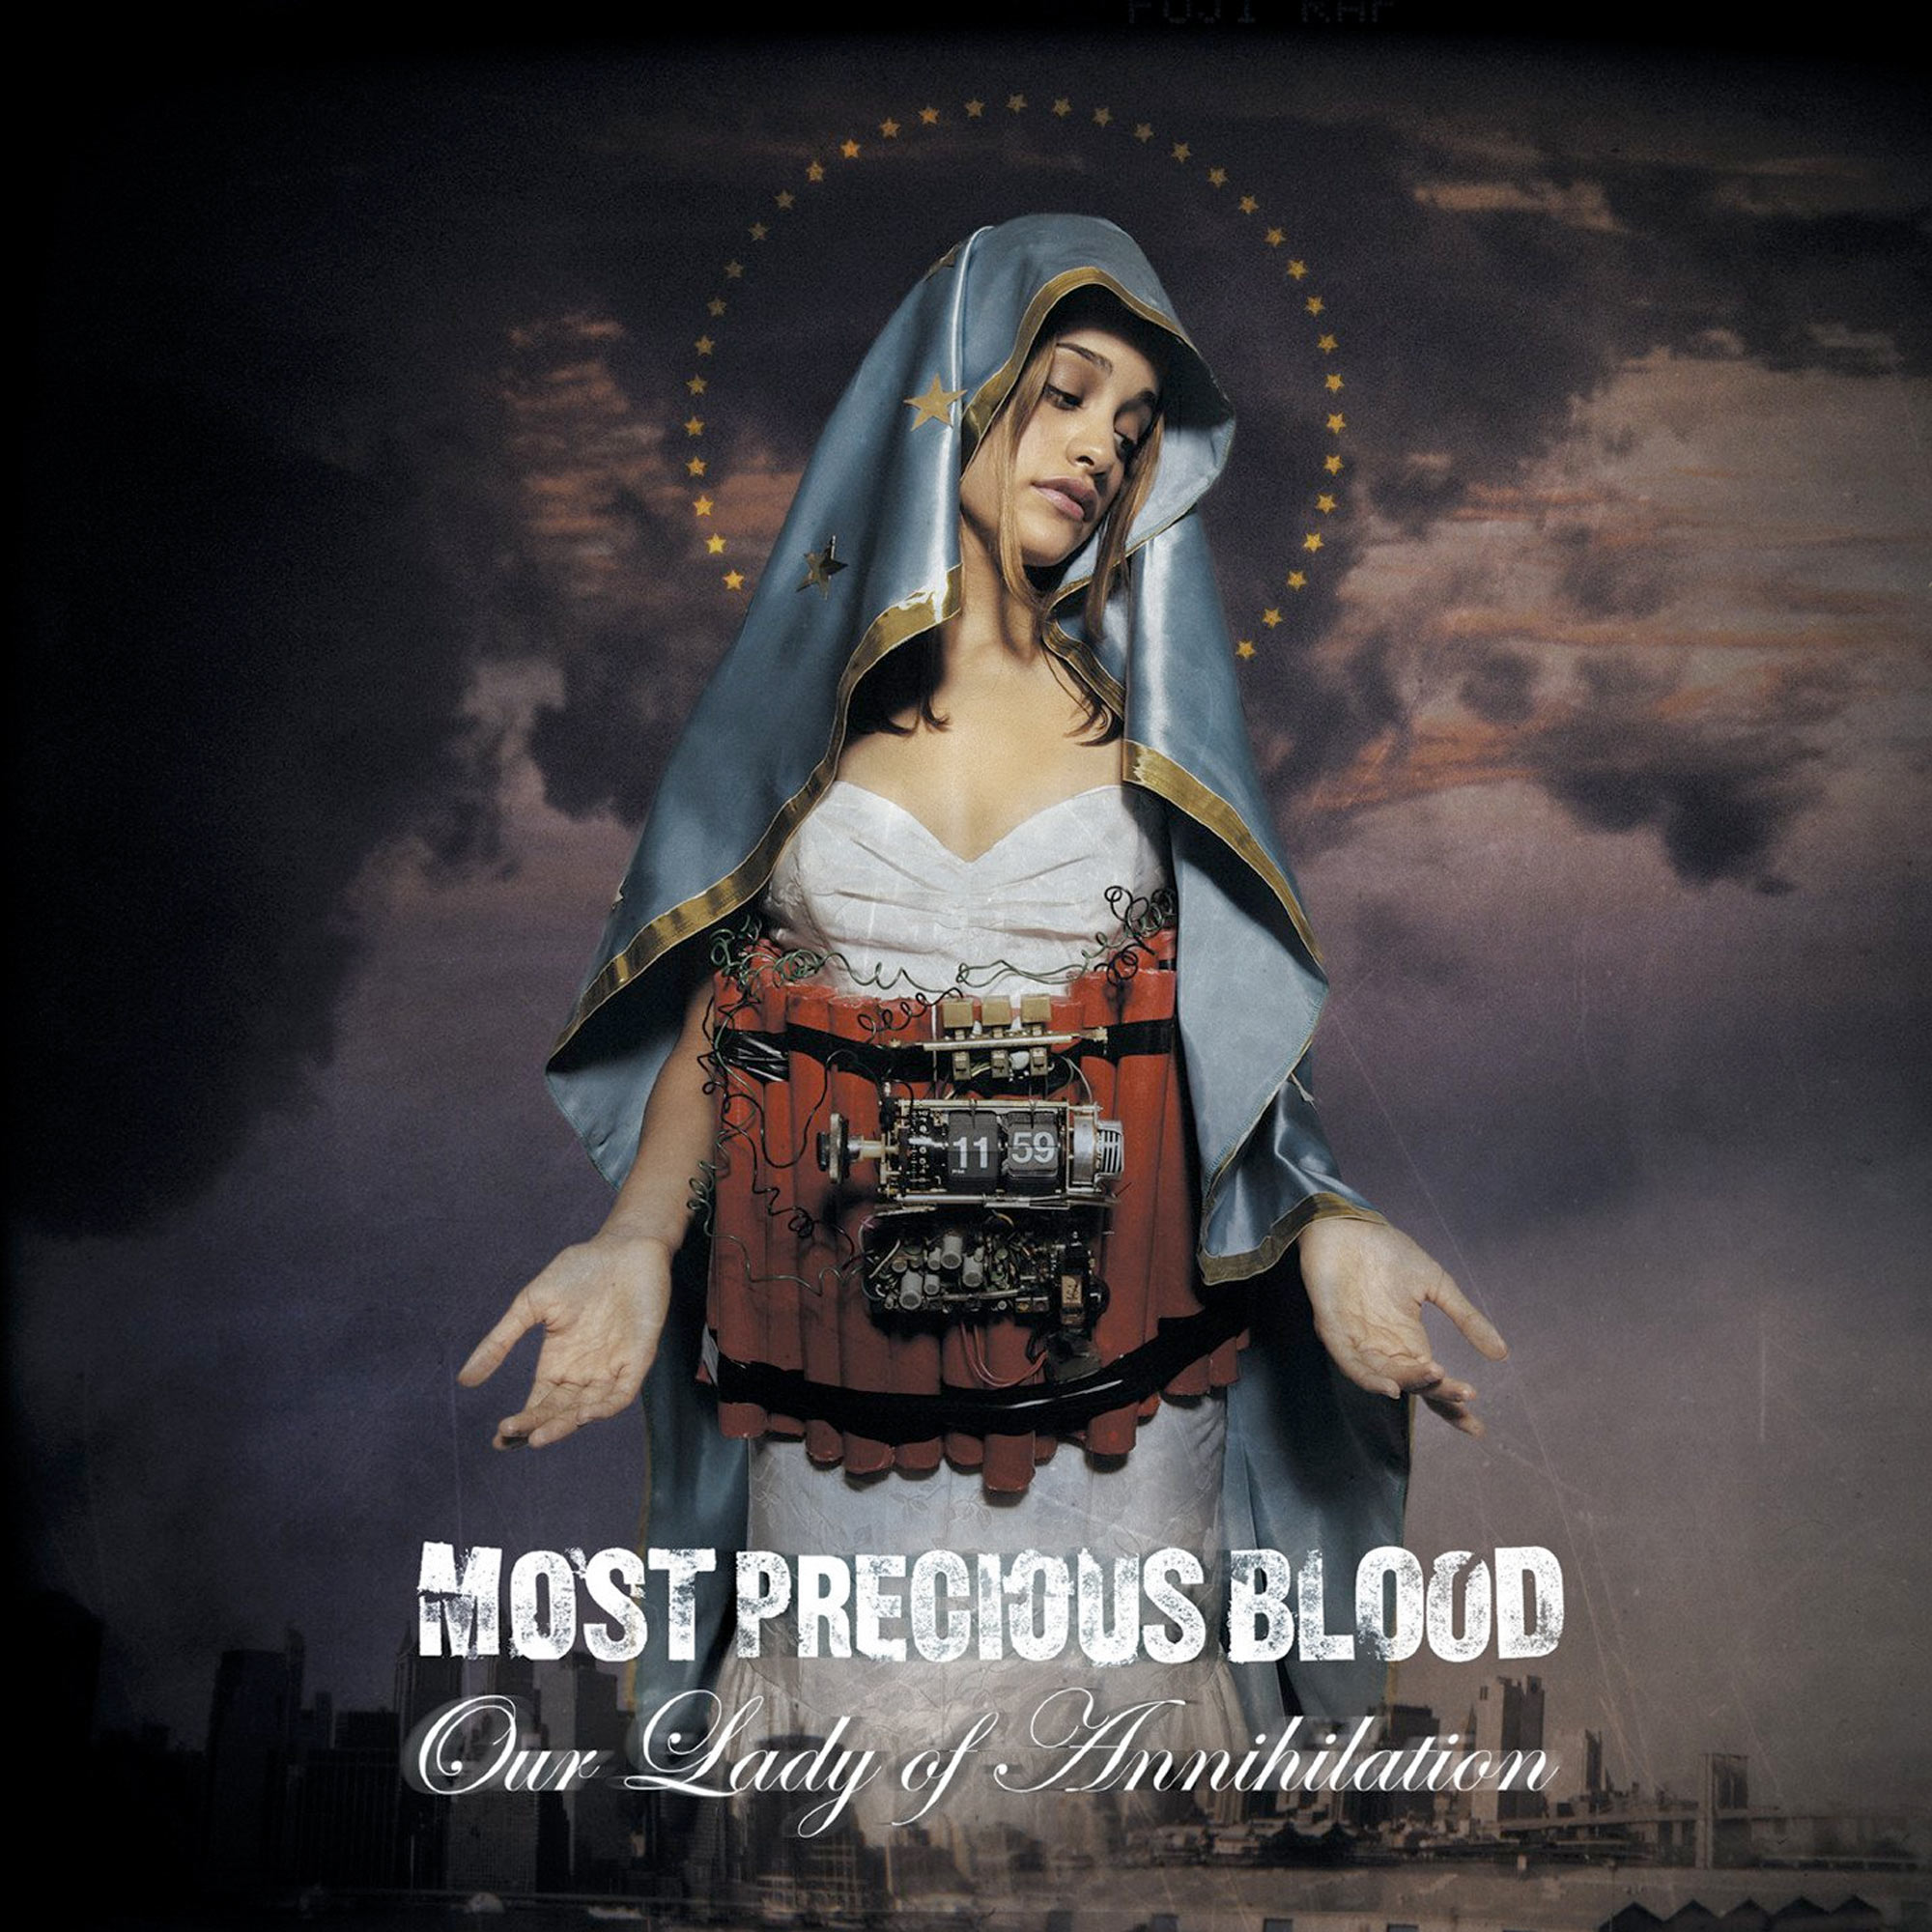 Most Precious Blood - The Great Red Shift - Cloud People Remix